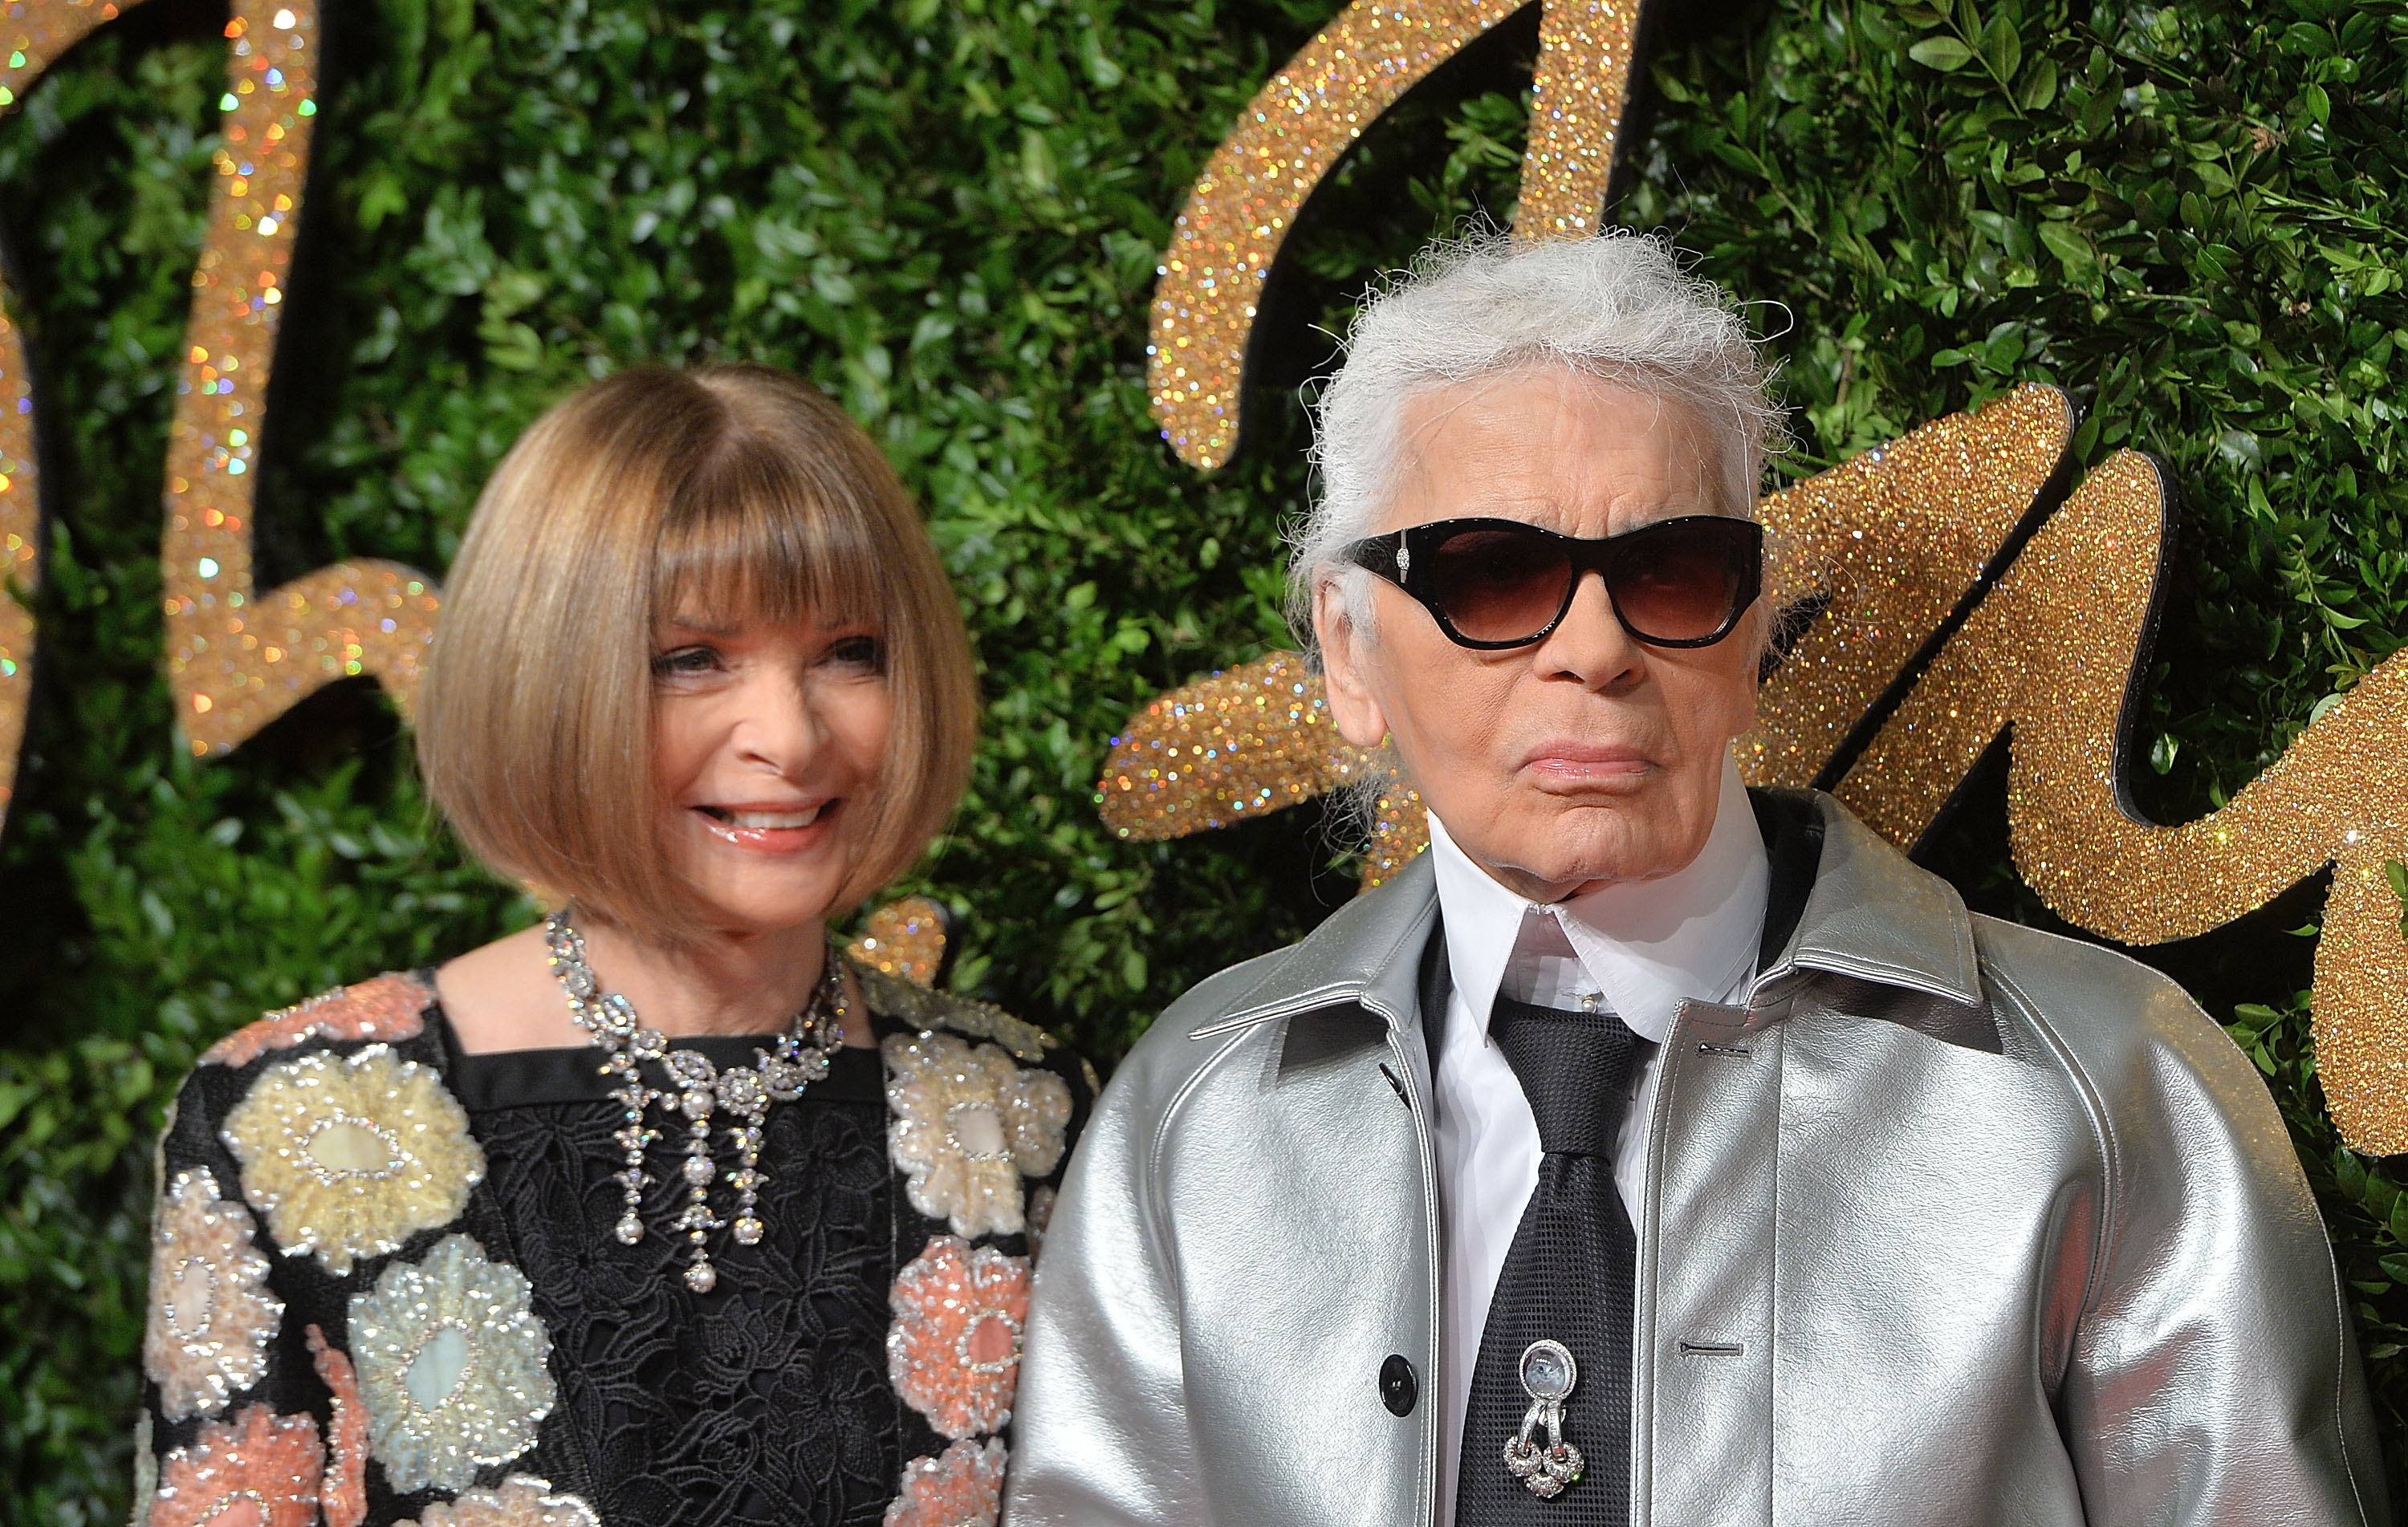 LONDON, ENGLAND - NOVEMBER 23: Anna Wintour and Karl Lagerfeld attend the British Fashion Awards 2015 at London Coliseum on November 23, 2015 in London, England. (Photo by Anthony Harvey/Getty Images)